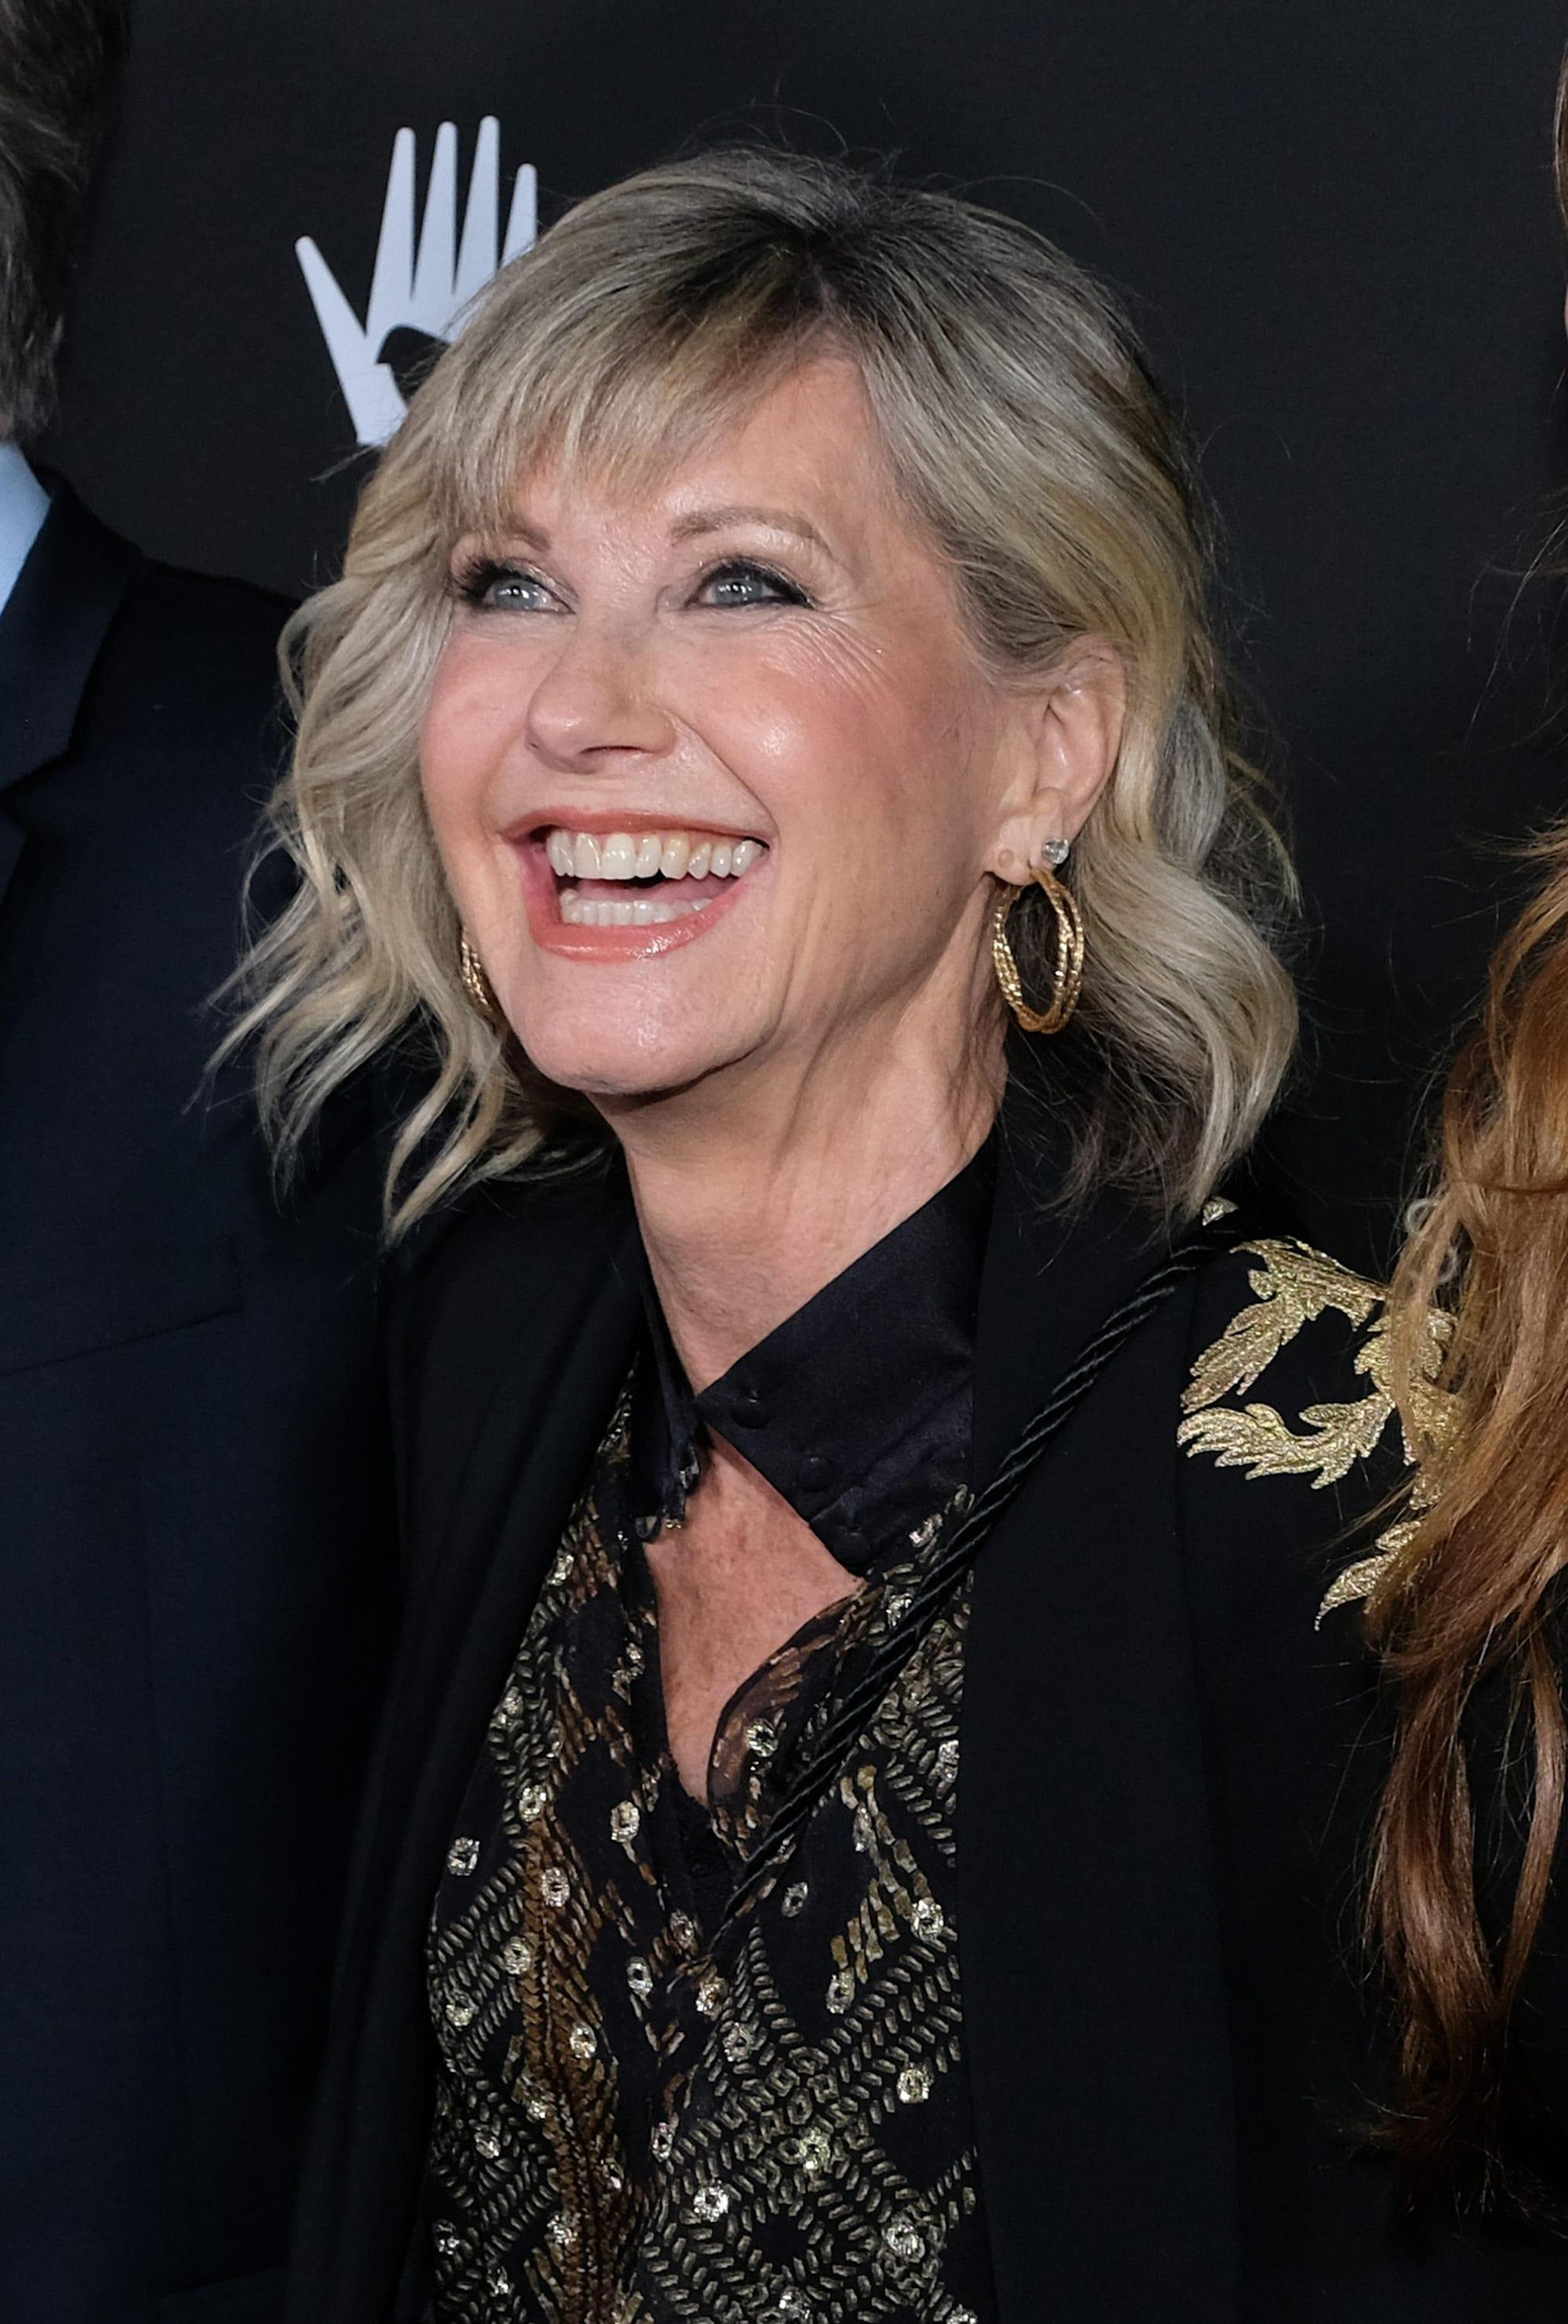 'This too will pass': Olivia Newton-John shares hopes for a better 2021 in video update